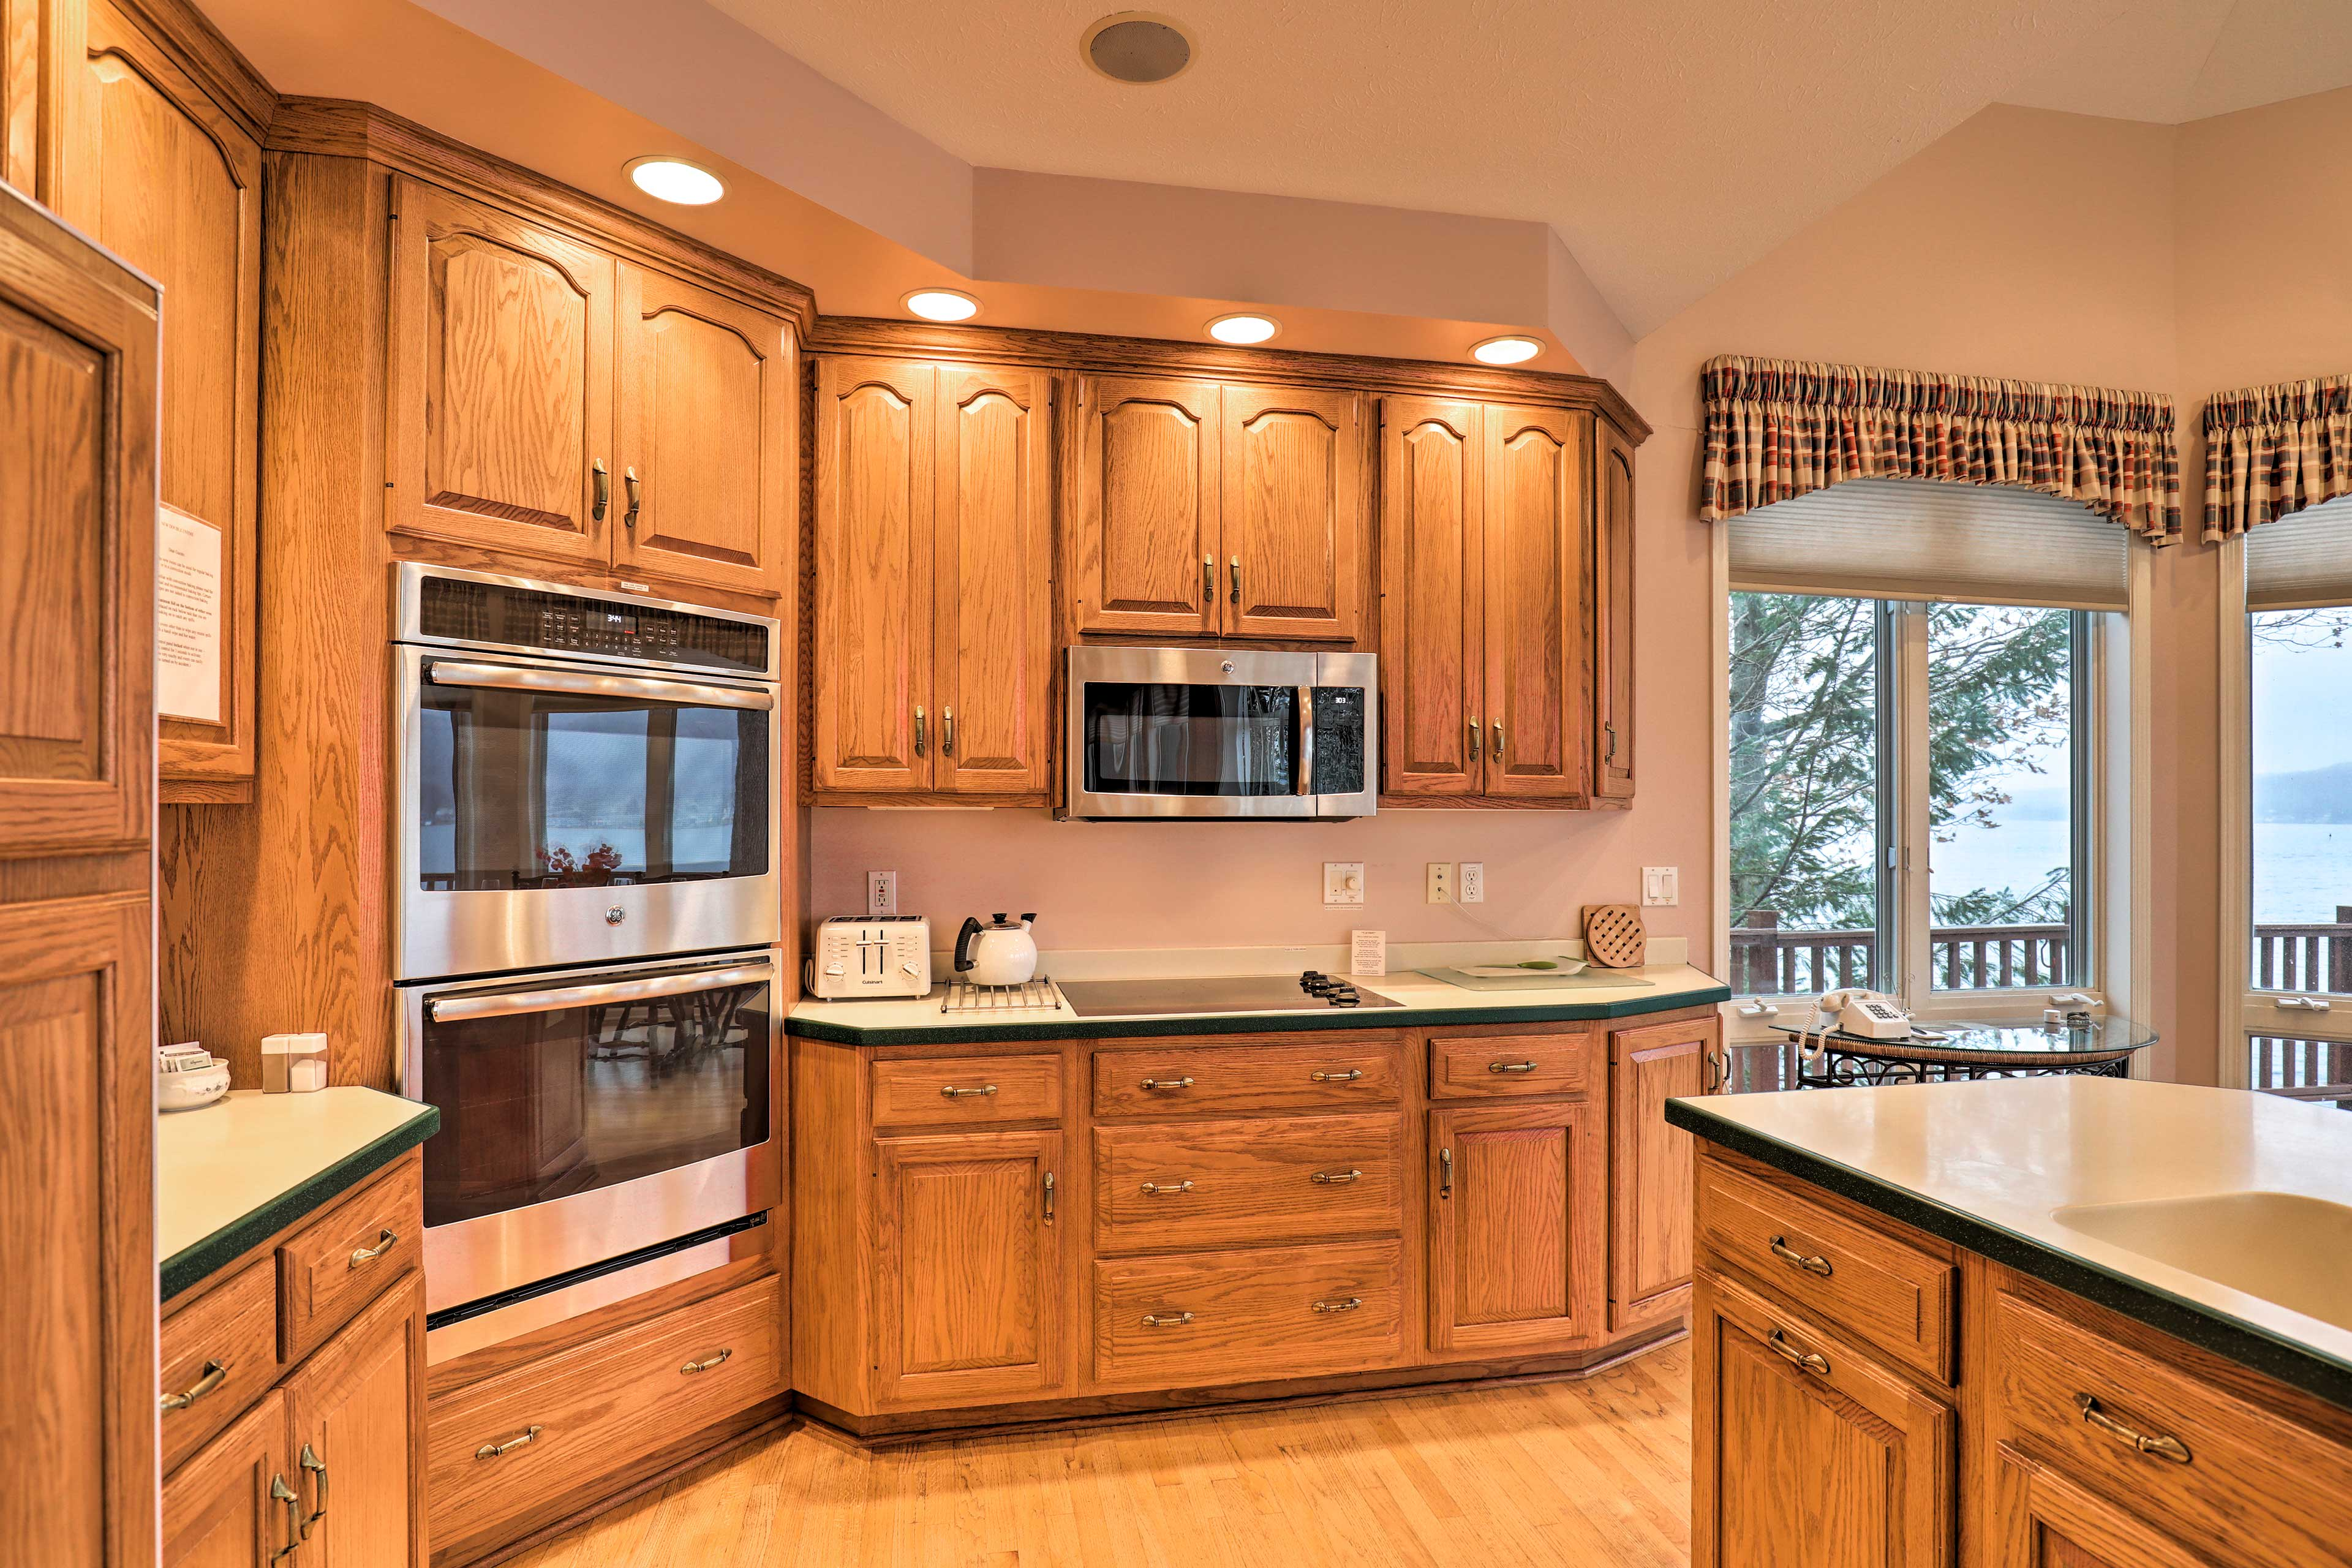 The wood-accented kitchen is fully equipped with modern appliances and cookware!